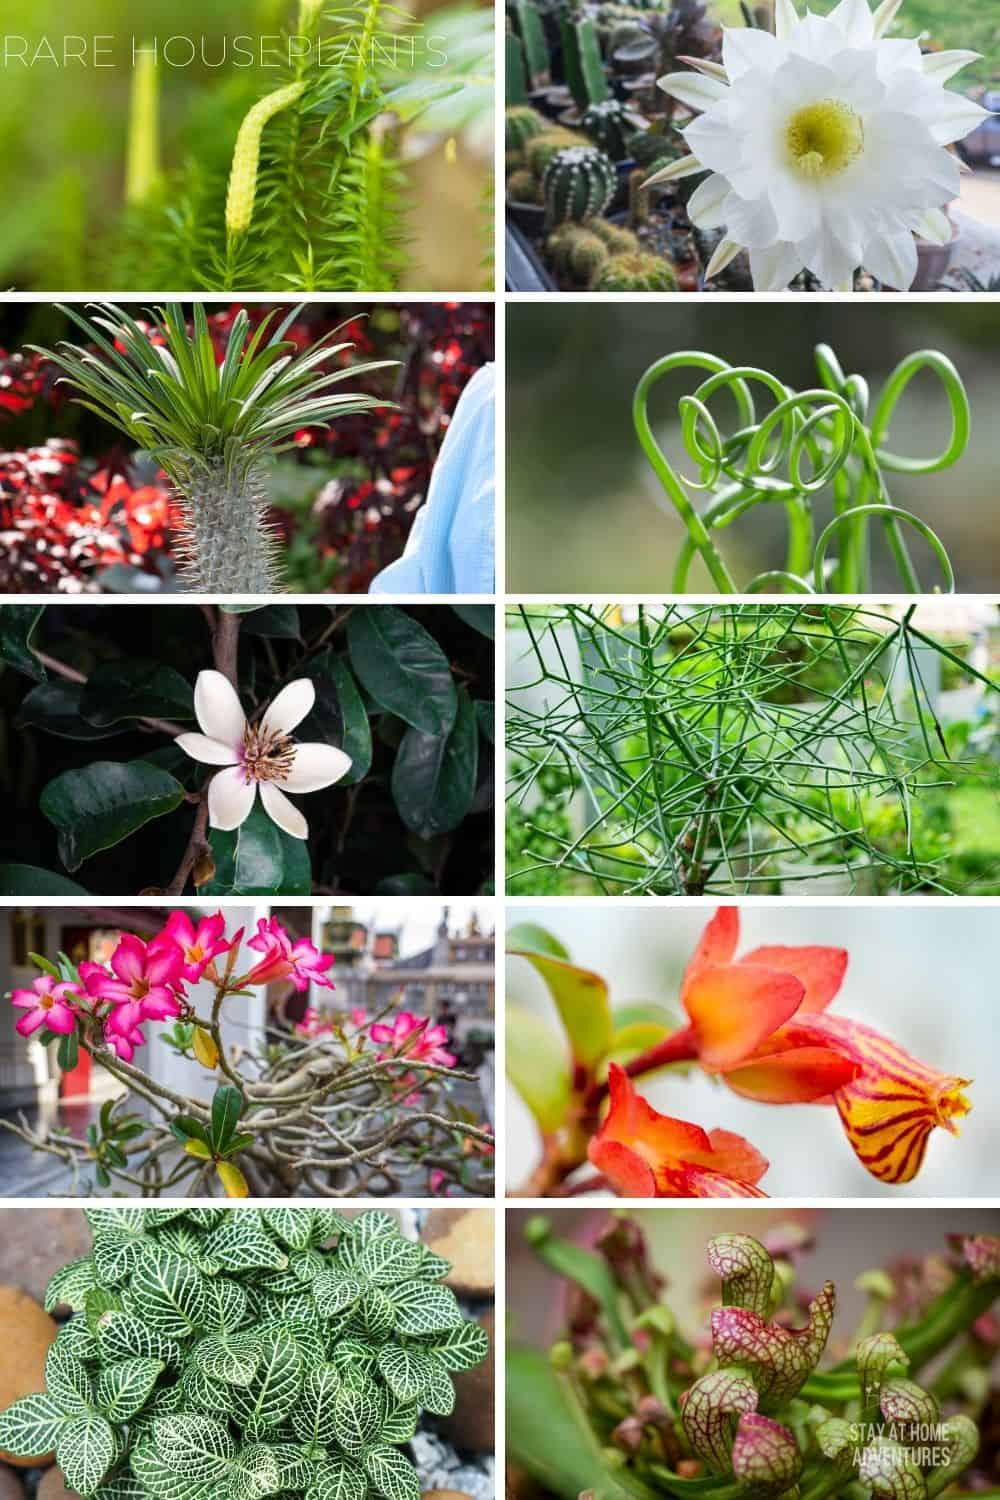 Learn all you need to know about rare houseplants, from what are they, what's the most expensive to what are the top rare houseplants around. via @mystayathome